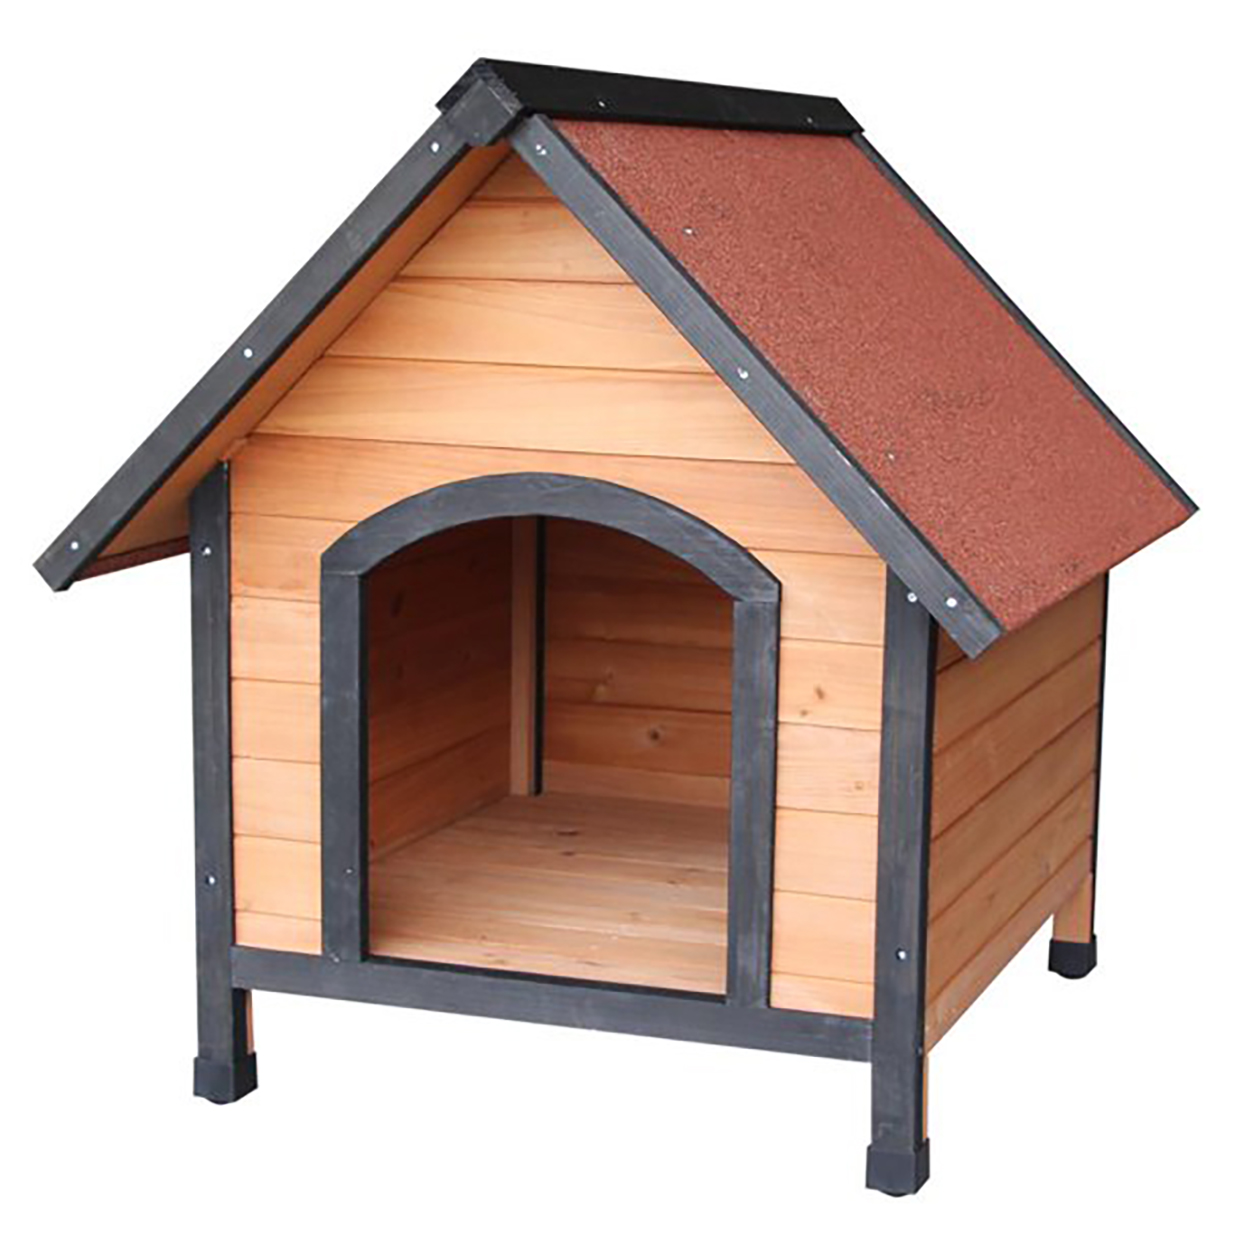 Raised doghouse